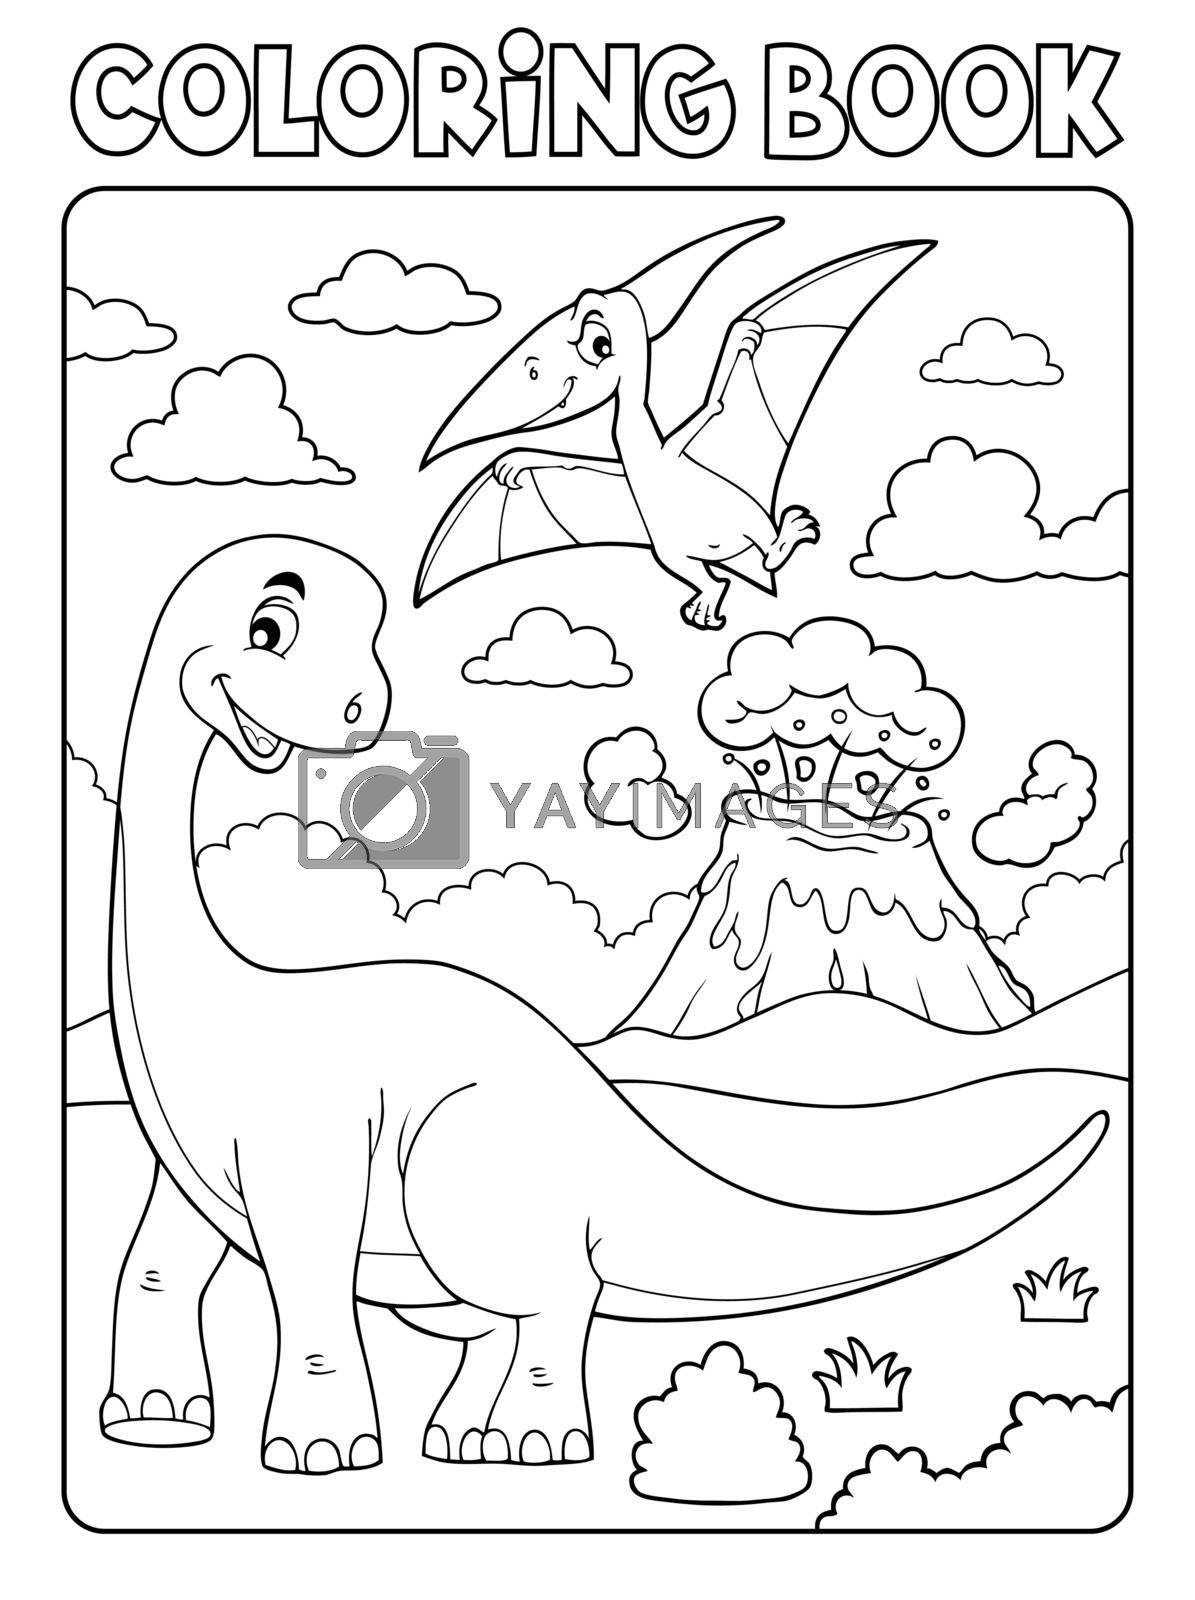 Coloring book dinosaur subject image 8 - eps10 vector illustration.